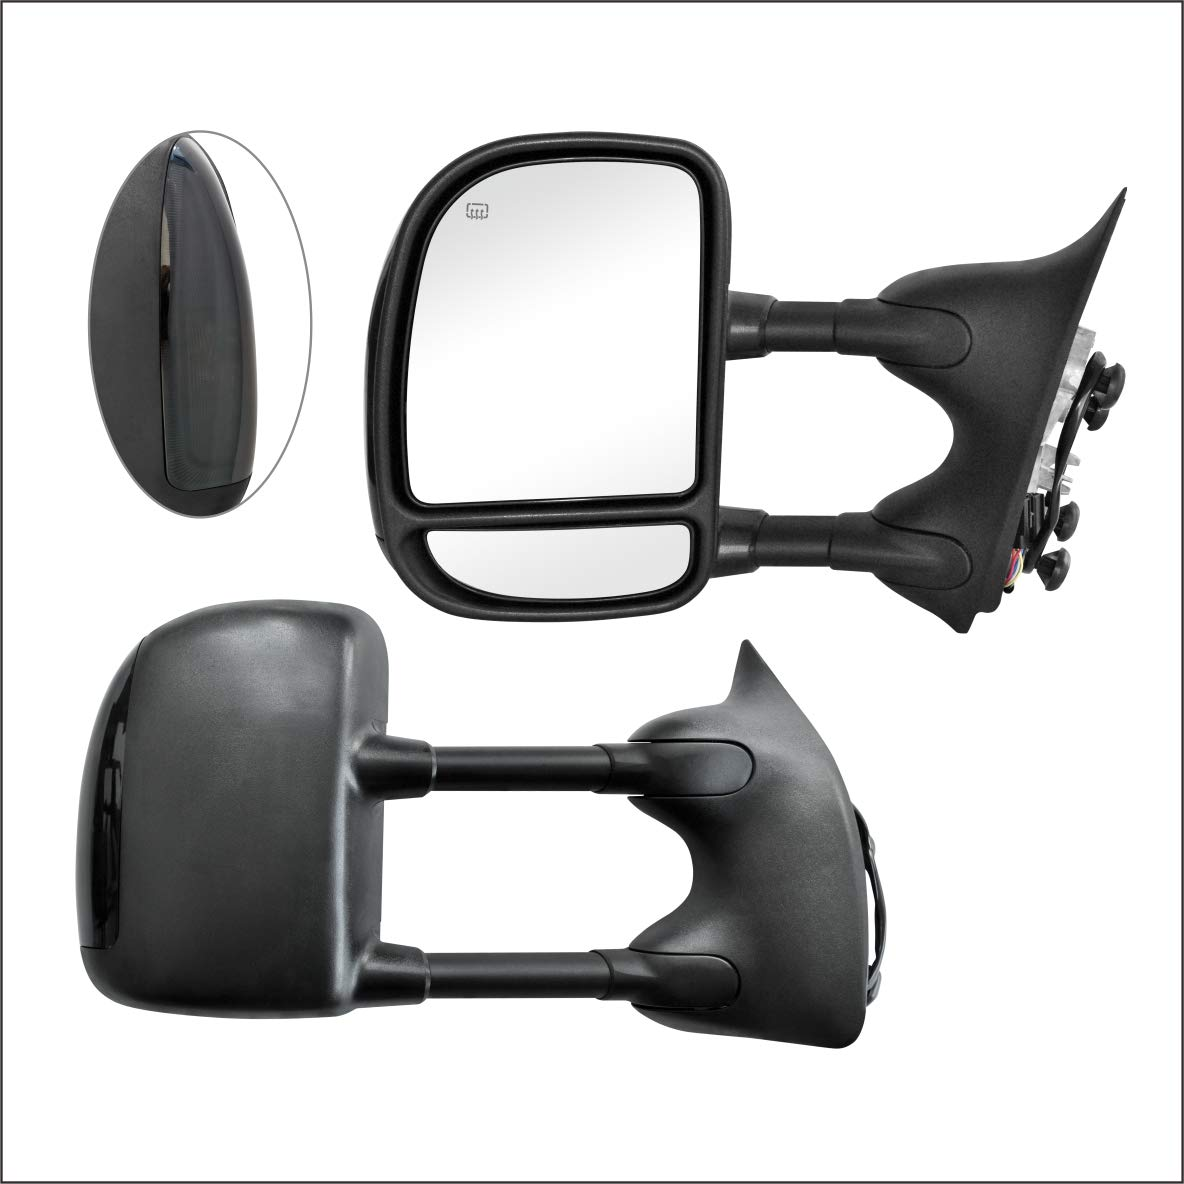 PAIR SET Perfit Zone Towing Mirrors Replacement Fit for 1999-2007 FORD F-250 F-350 F-450 F-550 SUPER DUTY POWER HEATED,W//SMOKE SIGNAL,BLACK